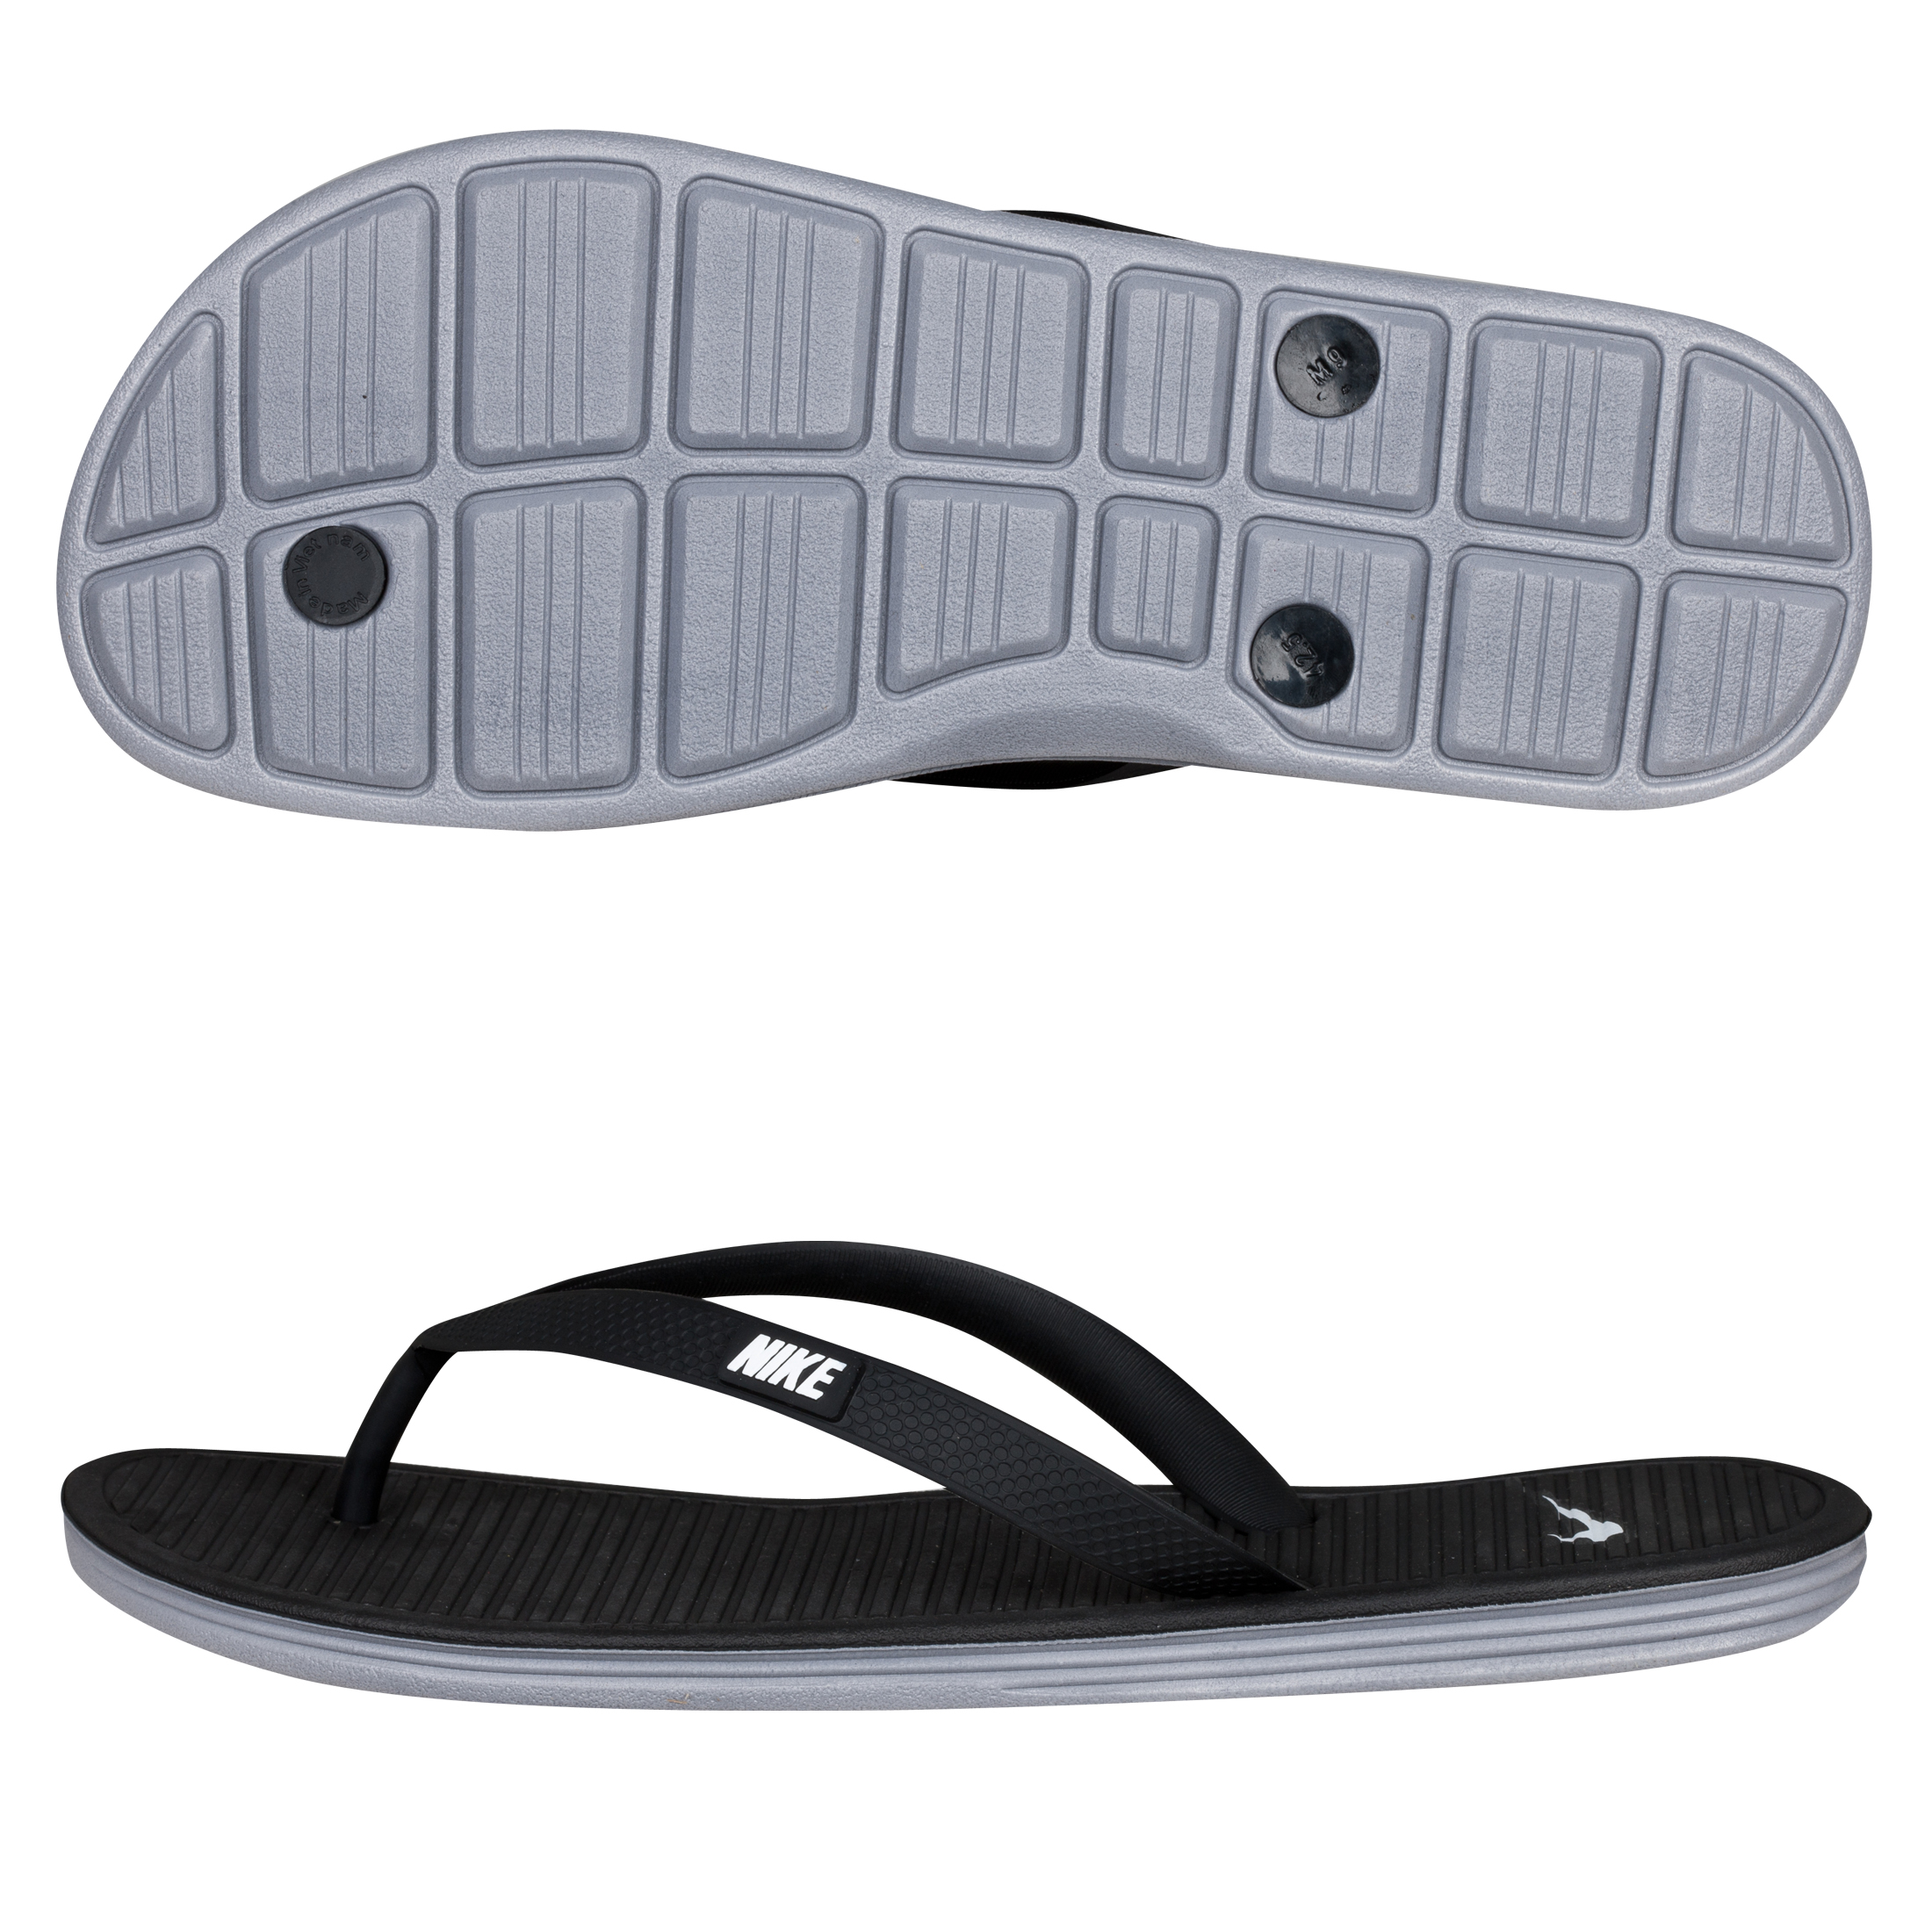 Nike Solarsoft Thong II - Black/White Stealth